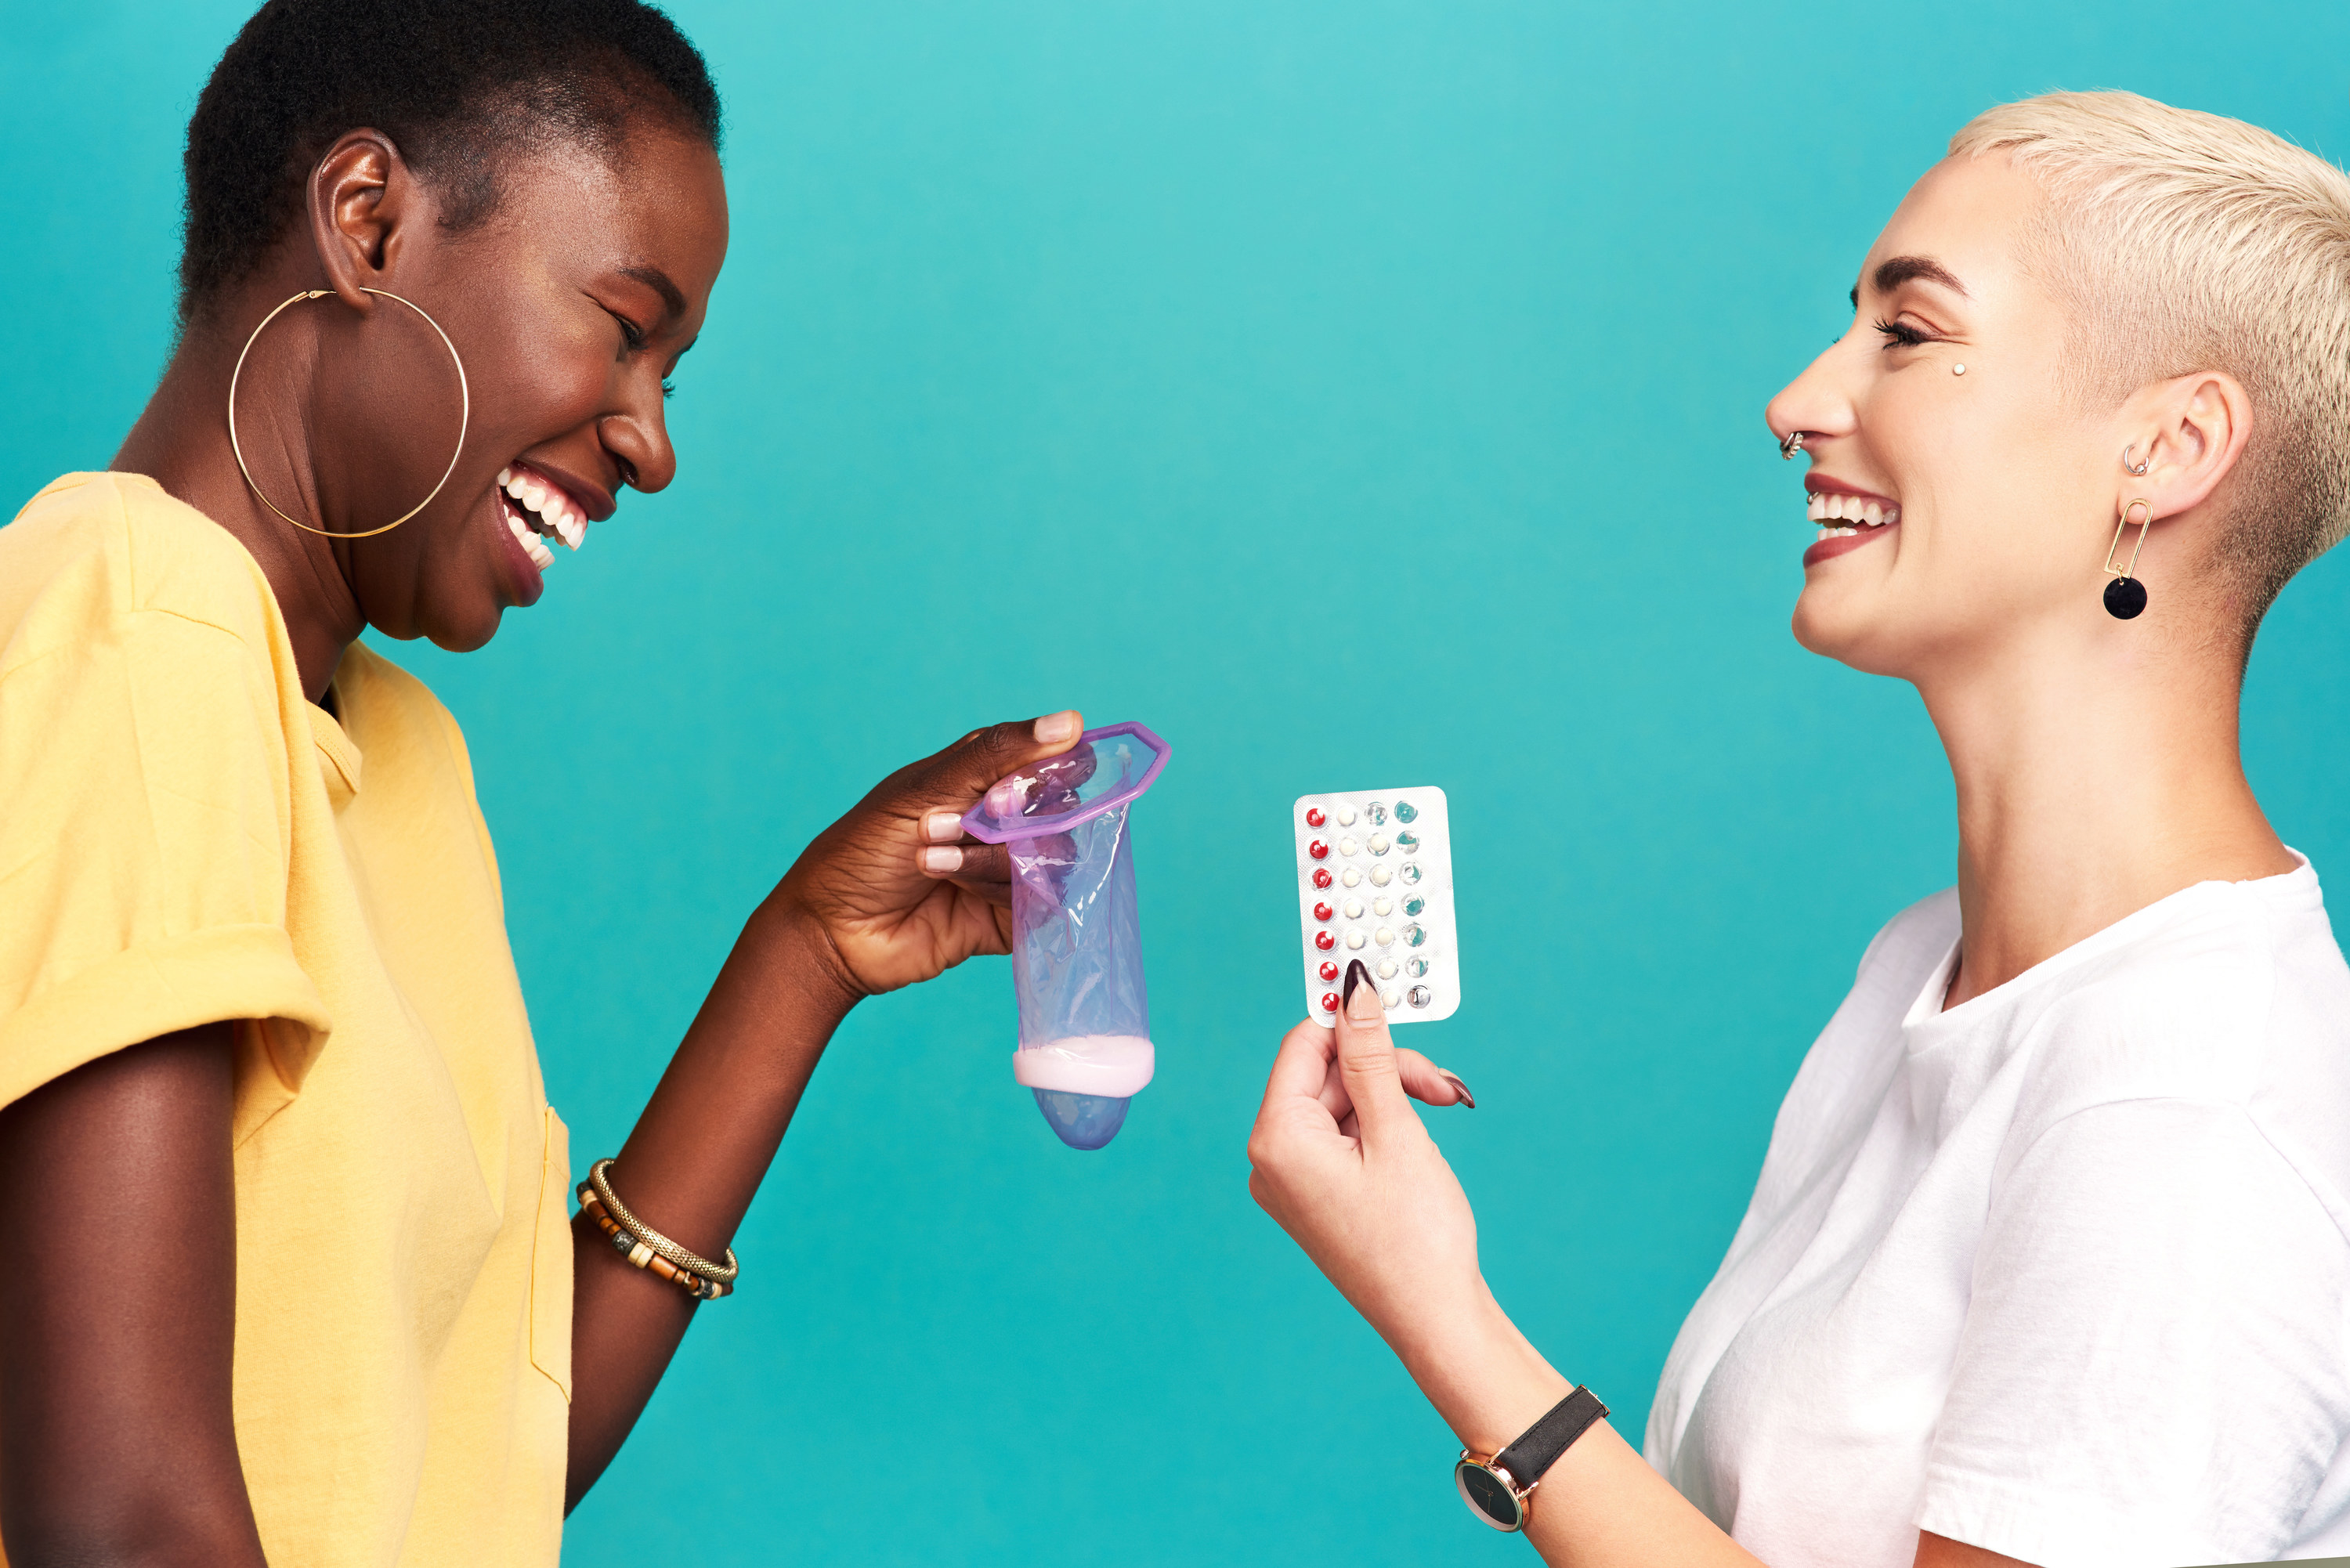 Two people holding up contraception options against a blue background